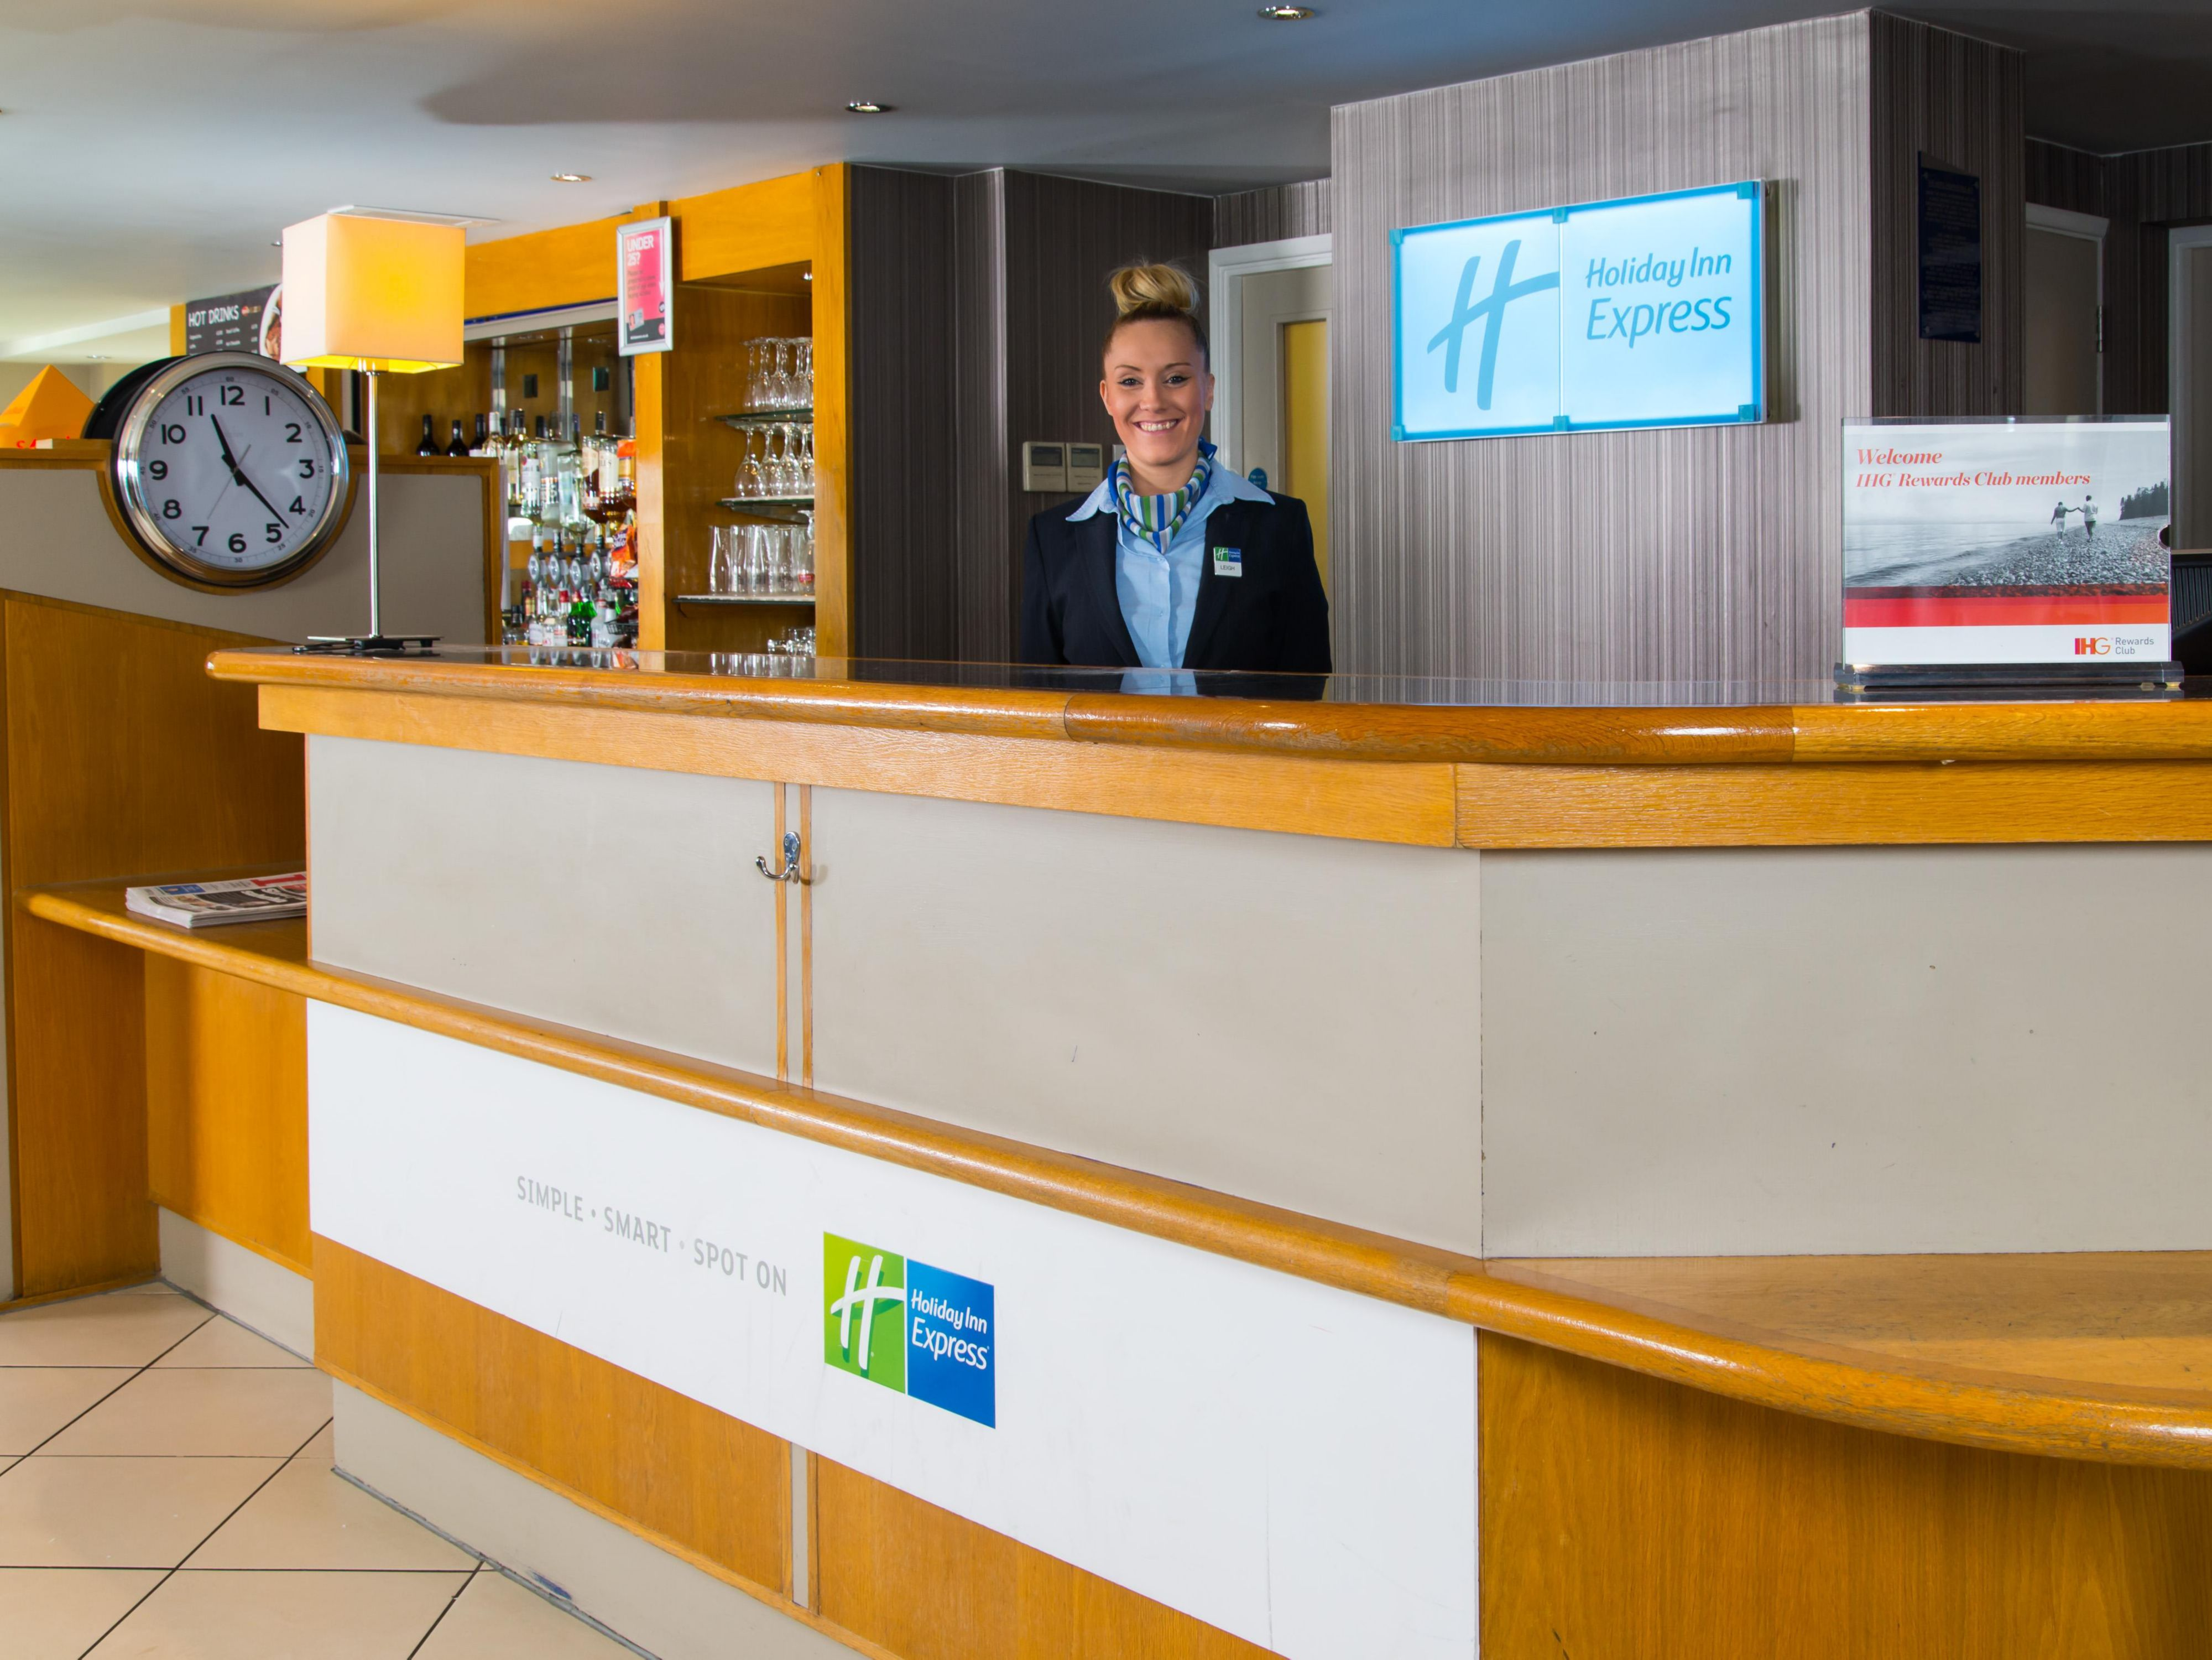 Service with a smile is guaranteed at our Luton Airport hotel